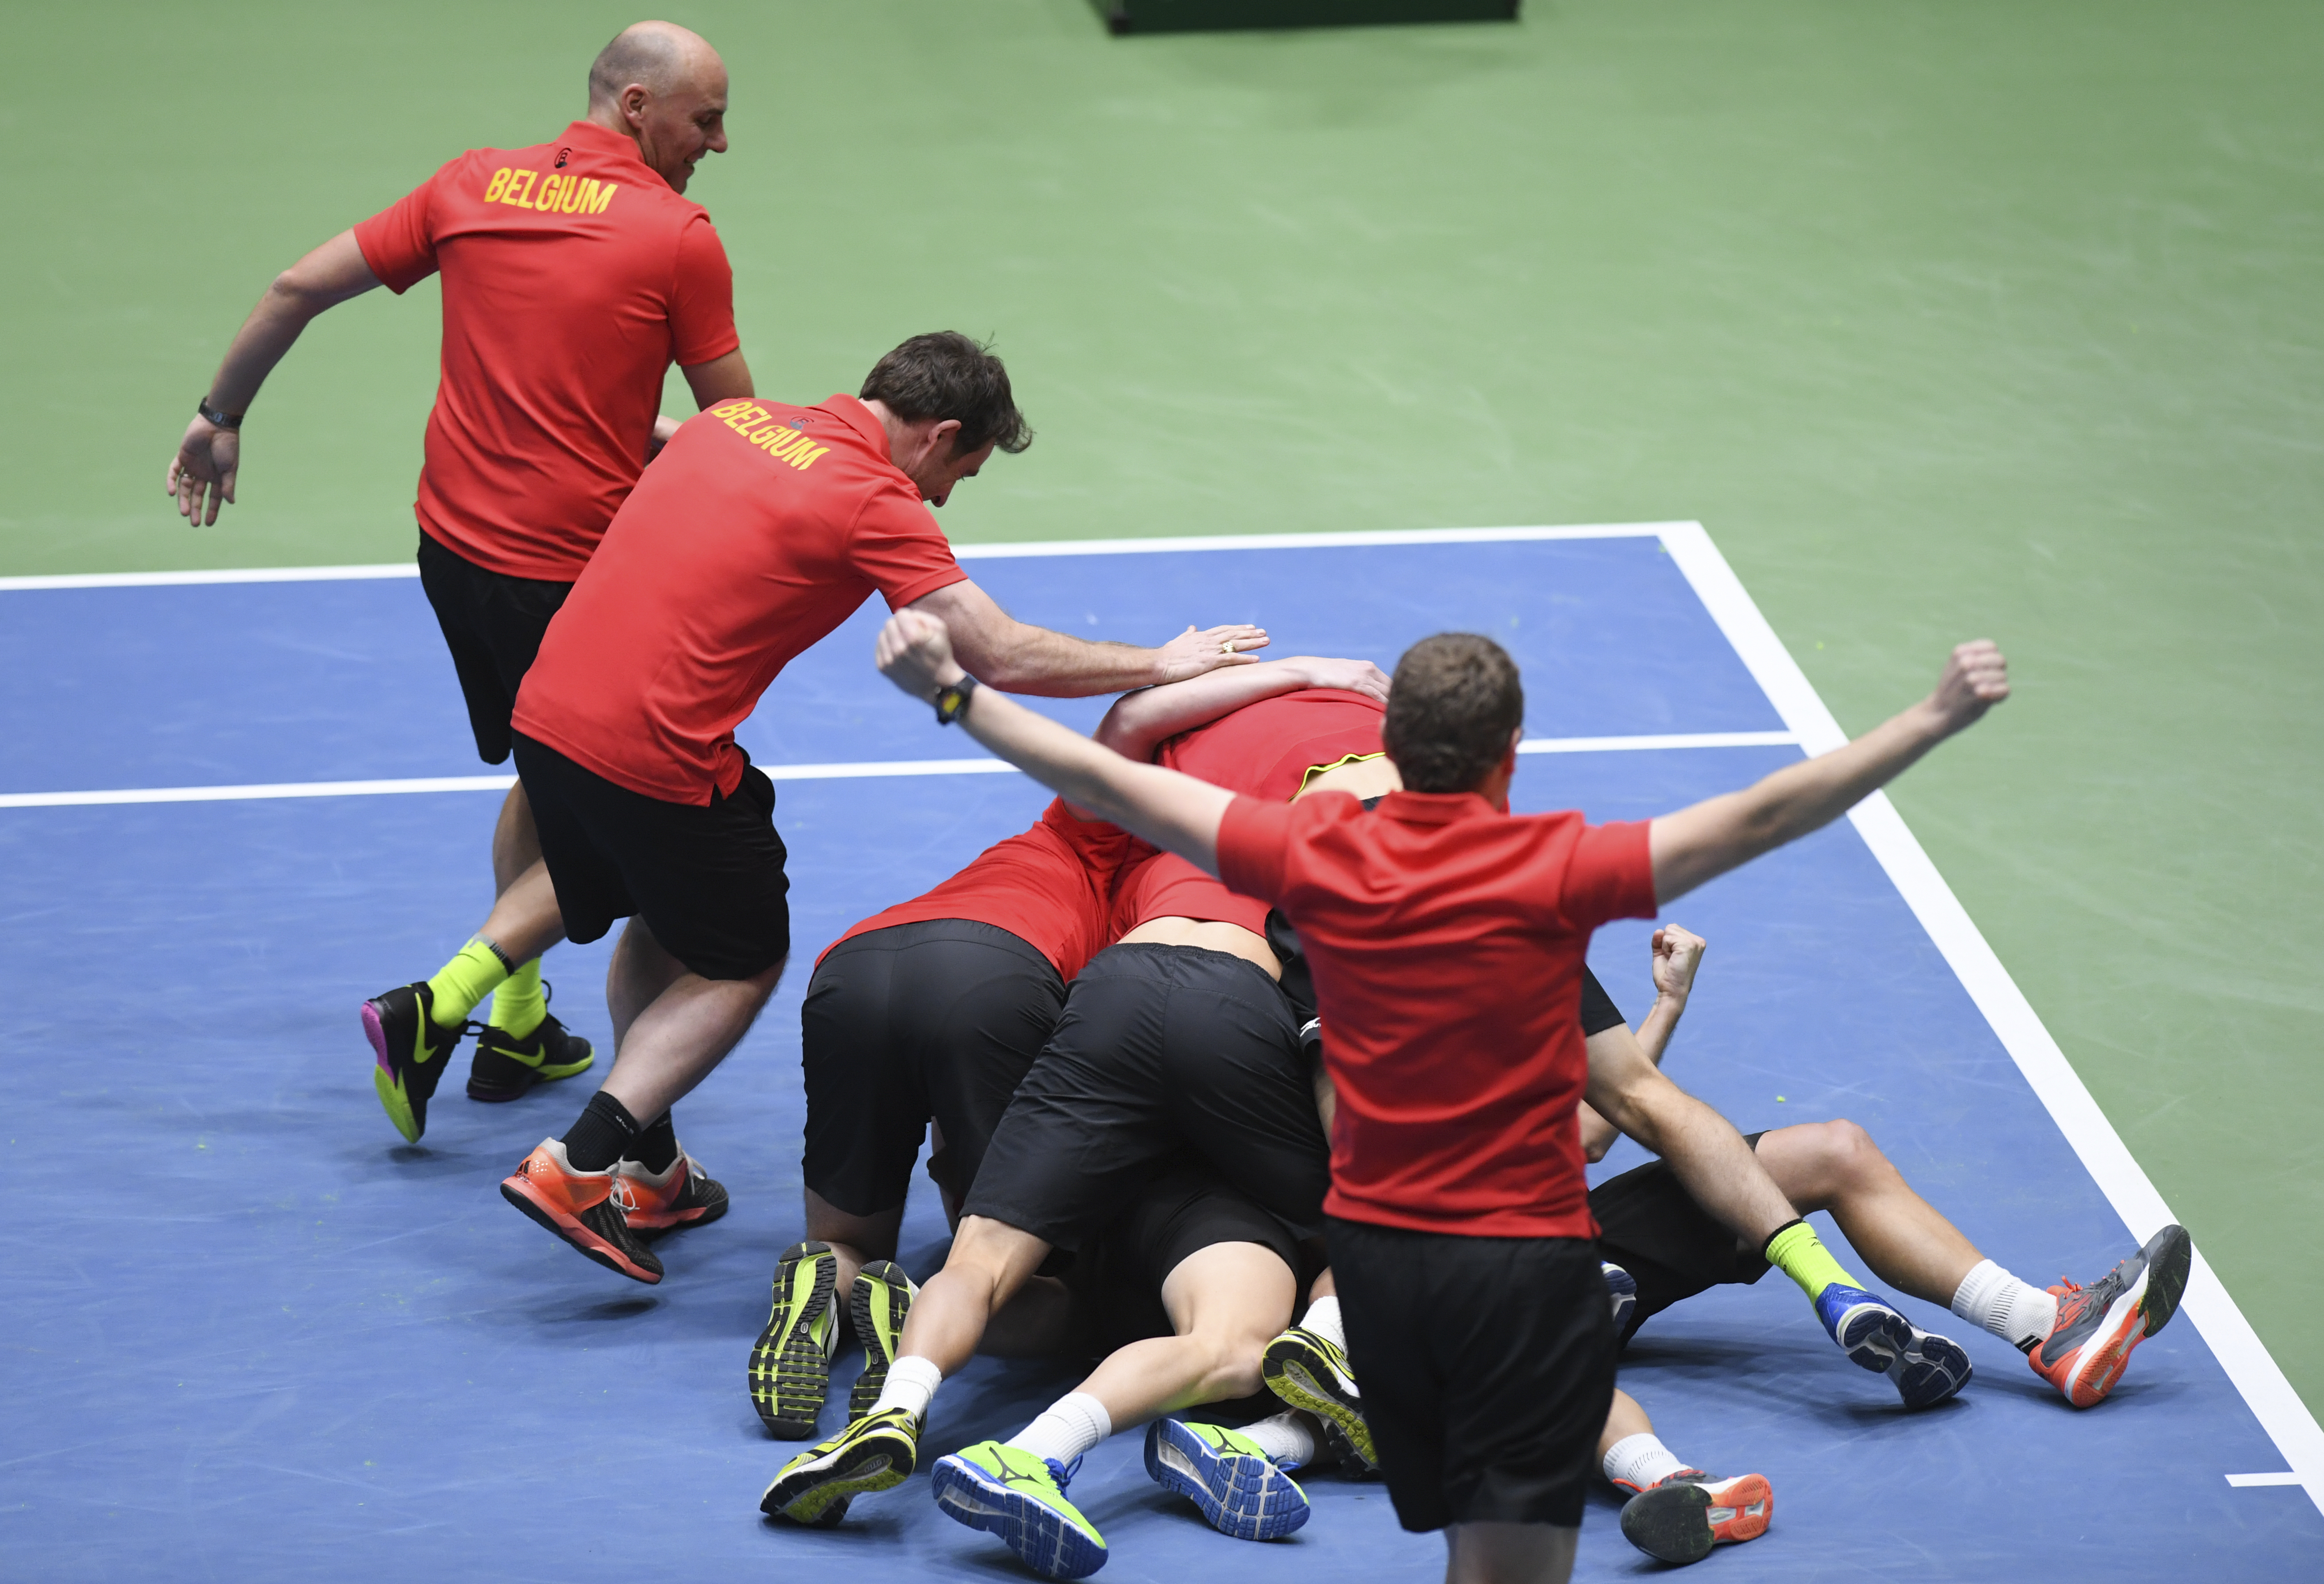 Belgian tennis players and team members celebrate after Steve Darcis won his match against Germany's Alexander Zverev in the first round Davis Cup tennis match, giving Belgium a decisive  3-1 lead , in Frankfurt, Germany, Sunday Feb. 5, 2017.  (Arne Deder